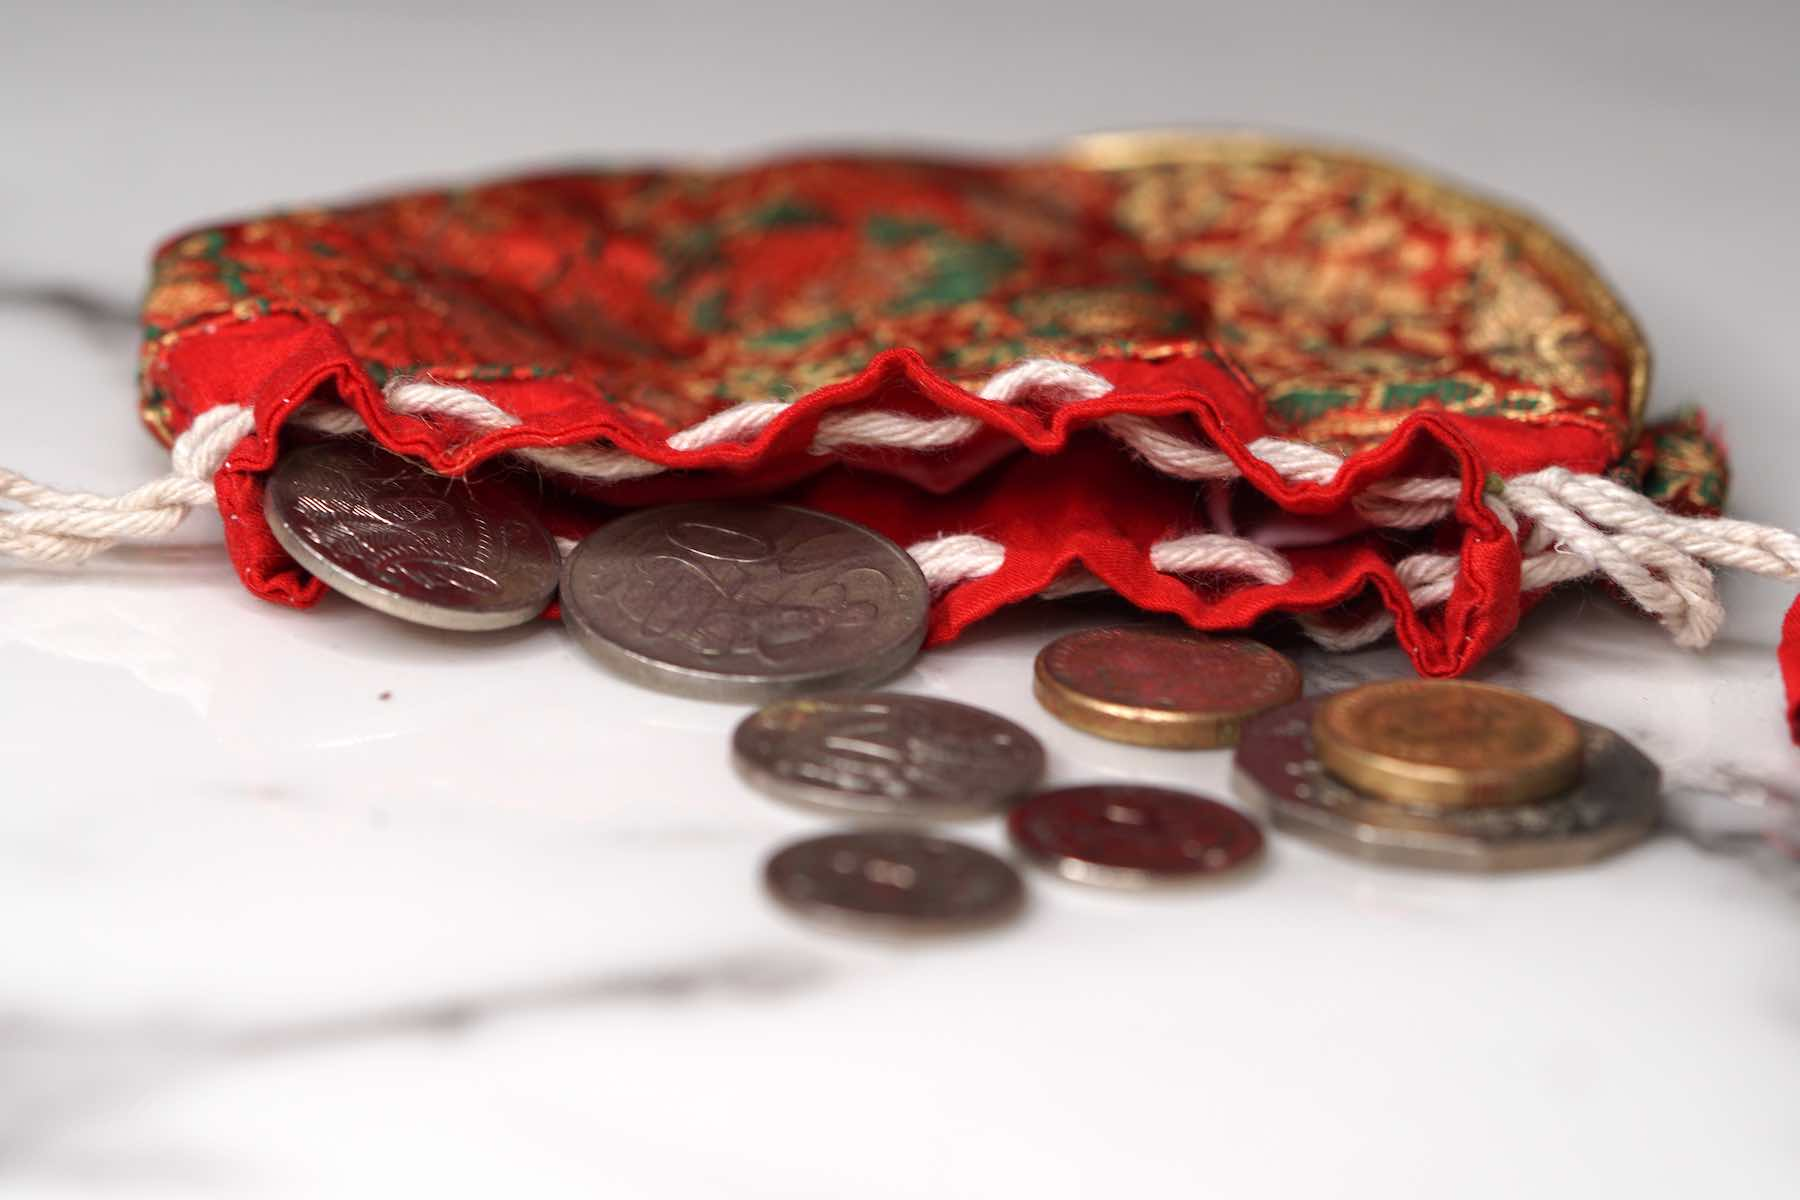 Hand made pouch to carry coins and small items